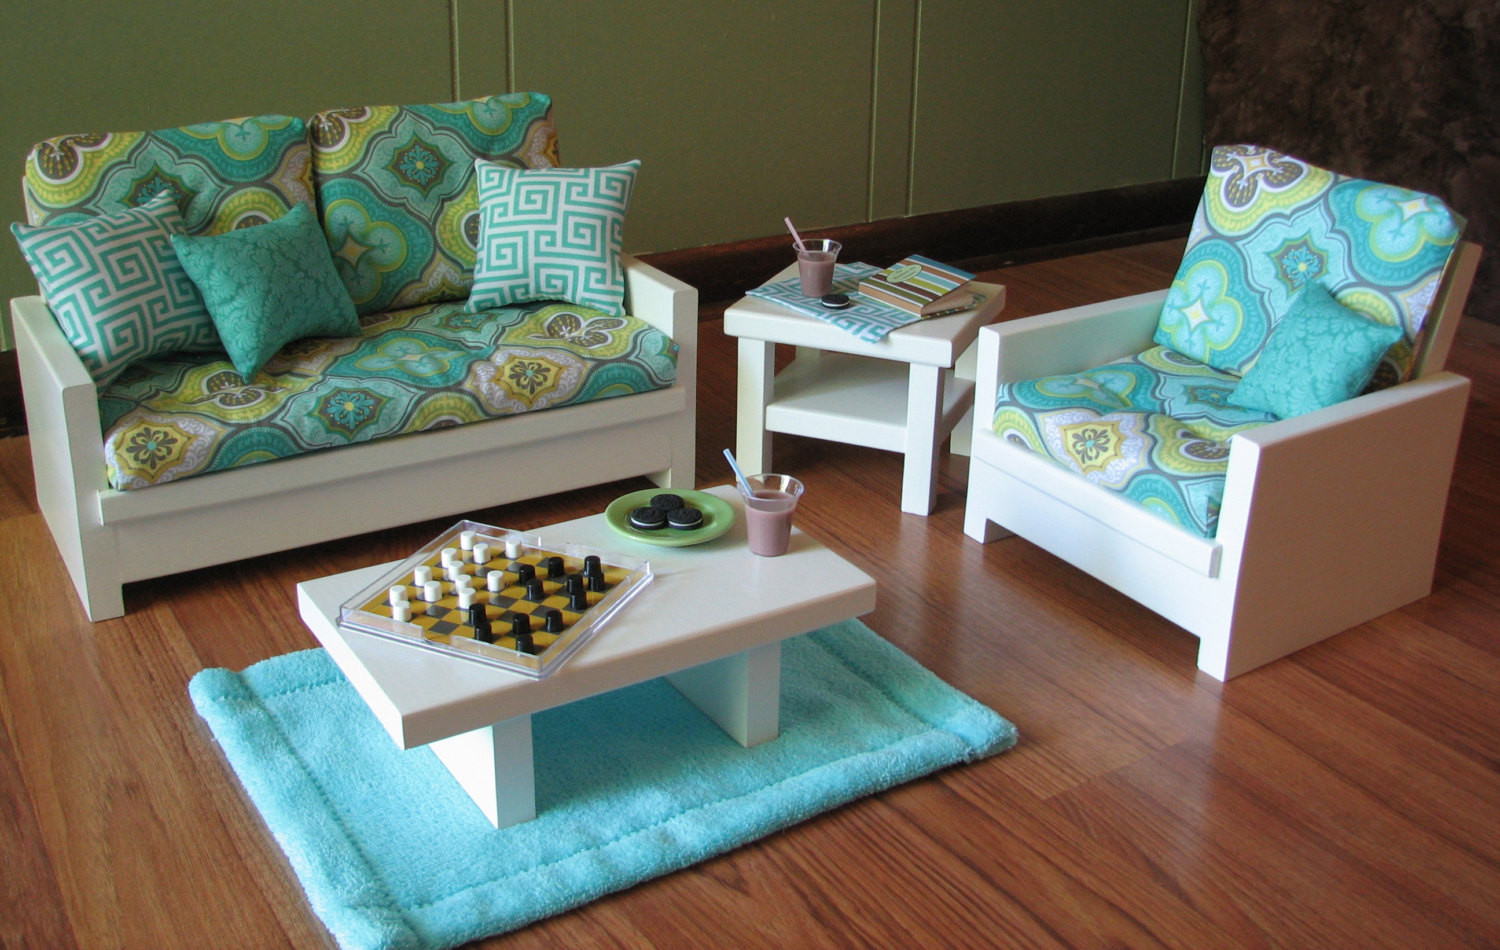 Best ideas about 18 Inch Doll Furniture DIY . Save or Pin Unavailable Listing on Etsy Now.